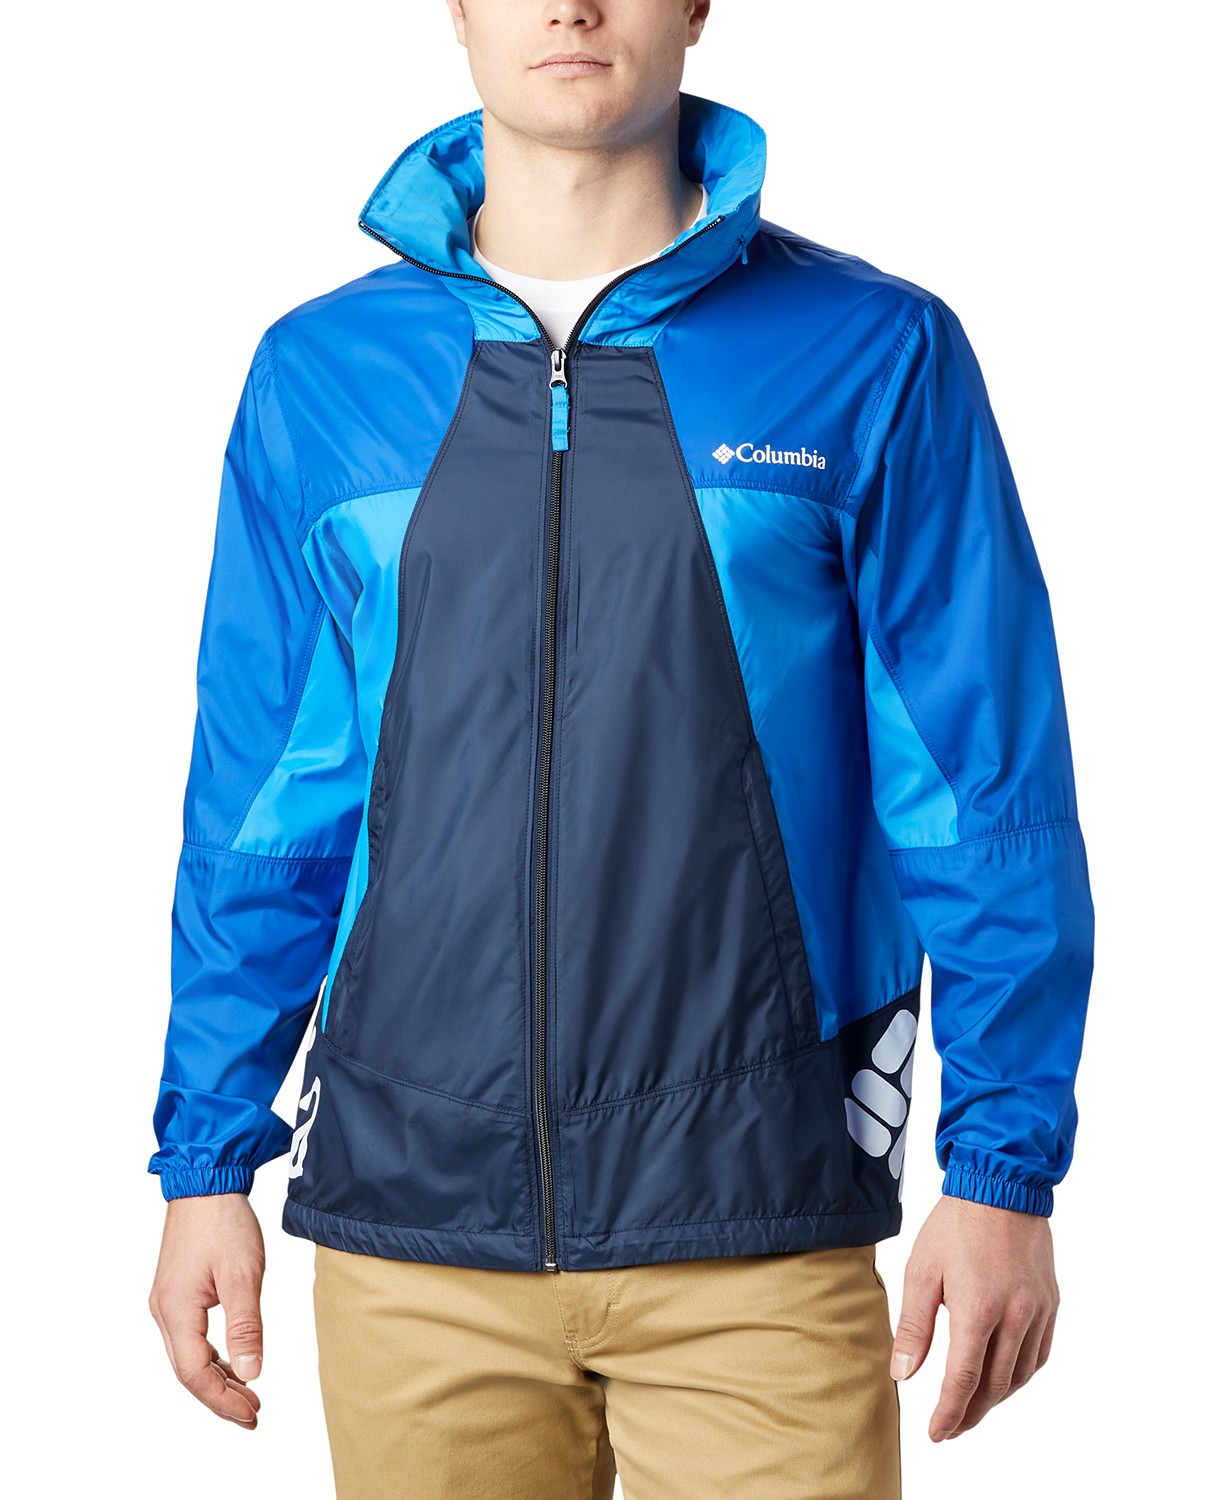 Columbia Mens Point Park Windbreaker Jacket